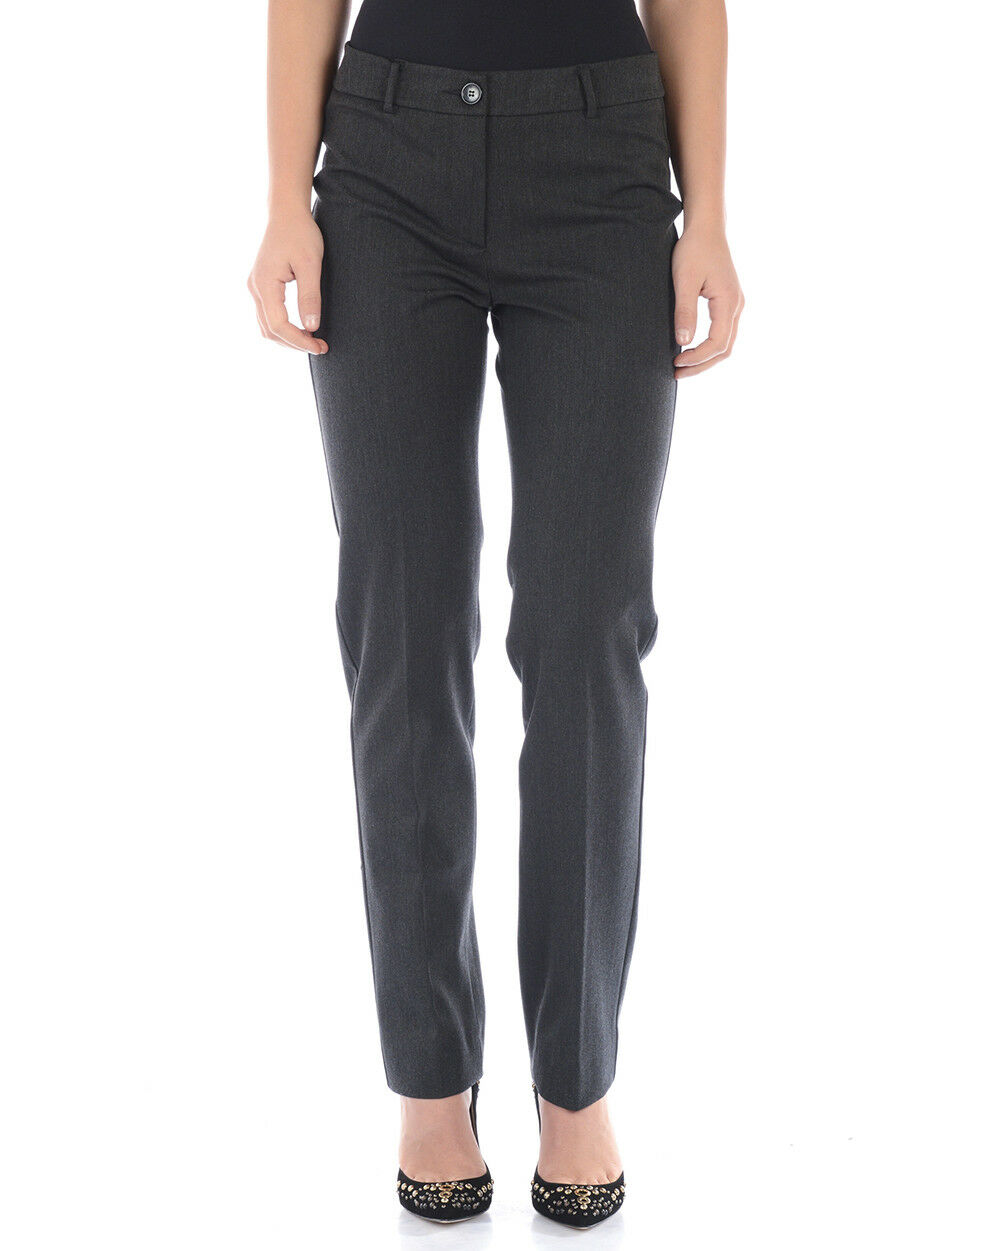 Max Mara Jeans Trouser SLIM FIT Woman Grey 51360263 1